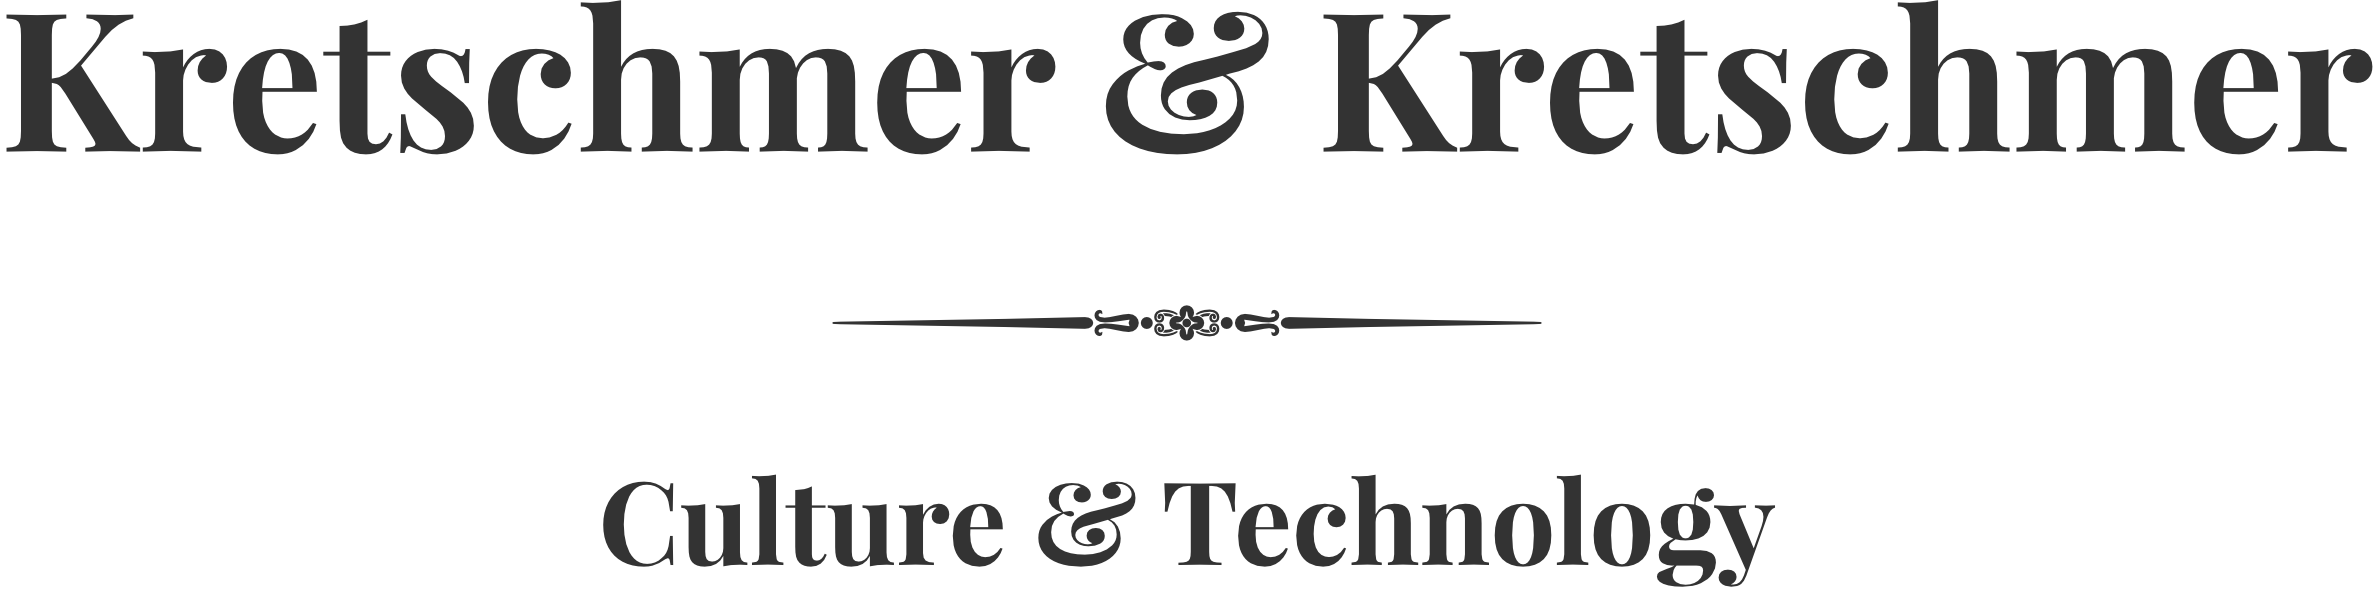 Logo der Kretschmer & Kretschmer - Culture & Technology GbR